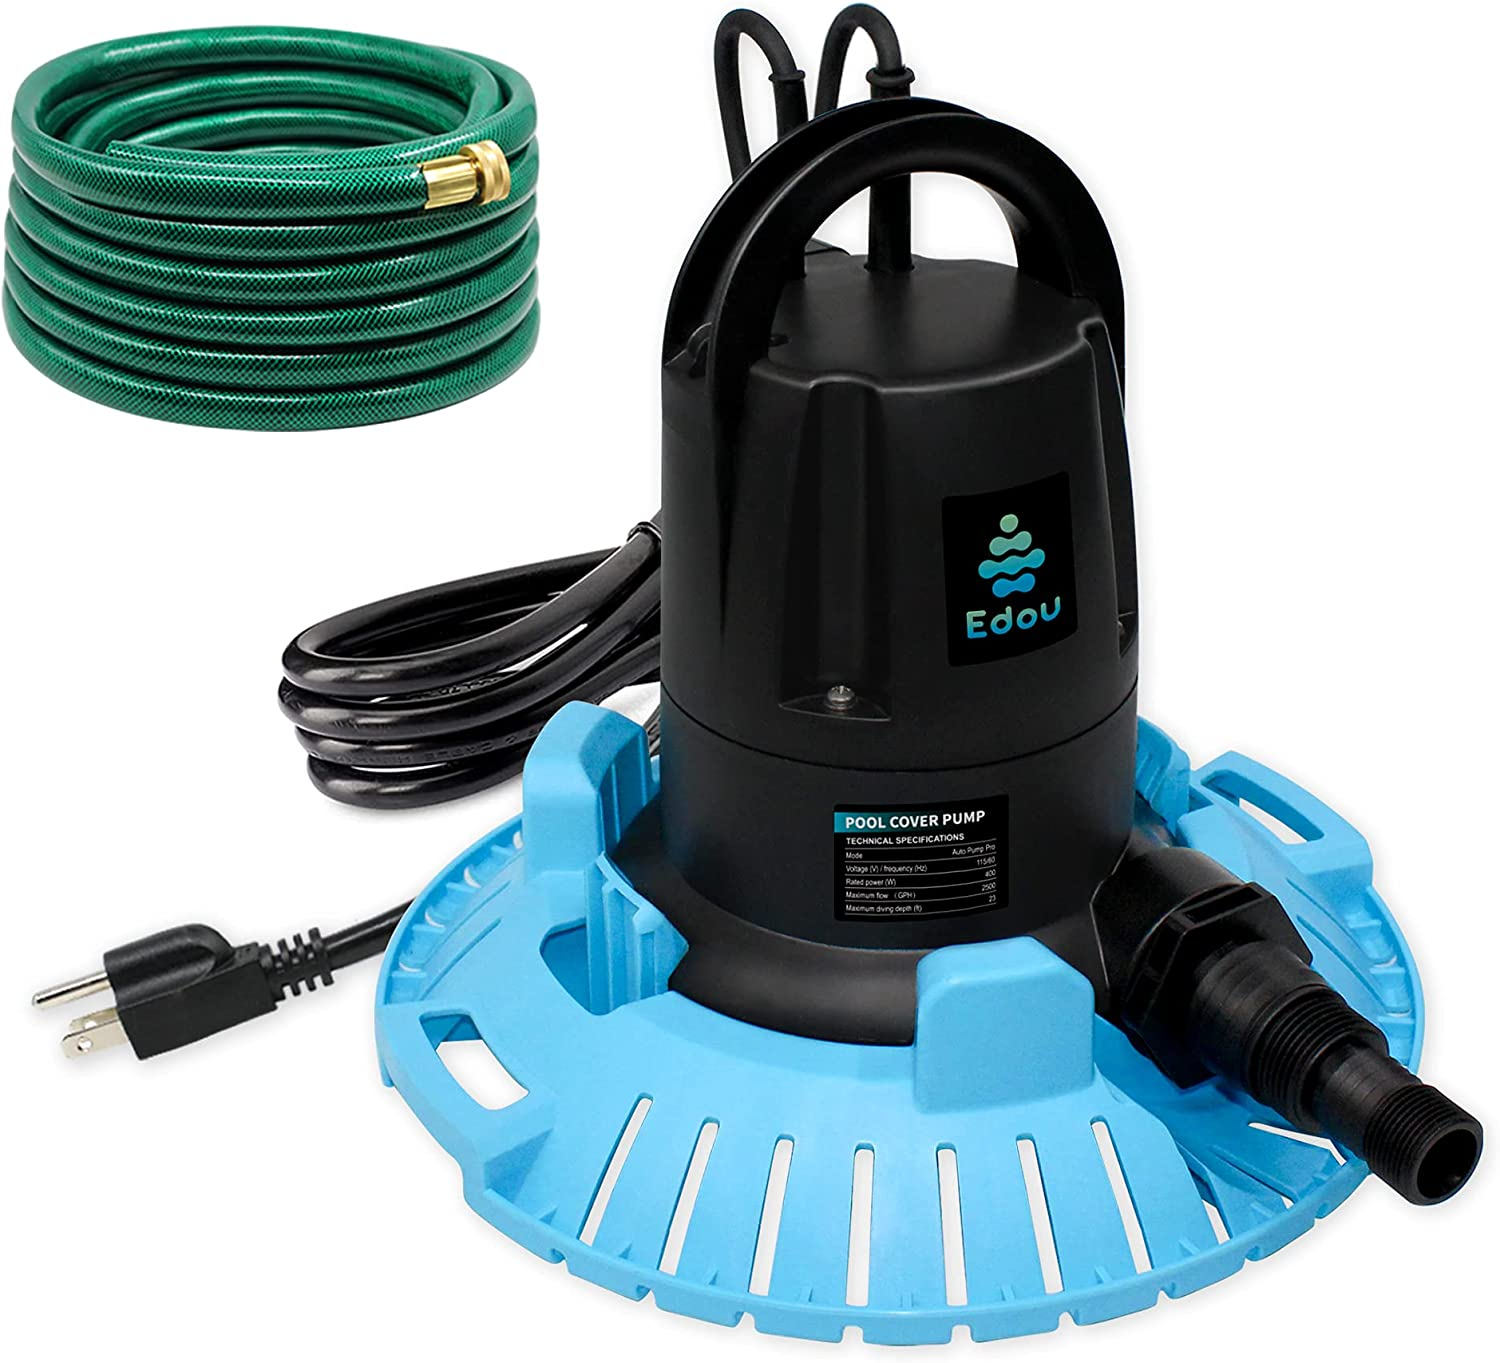 EDOU Automatic Swimming Pool Cover Pump Pro, 2500 GPH, 1/2 HP,110 V,Including an Adapter and 25 Ft 3/4